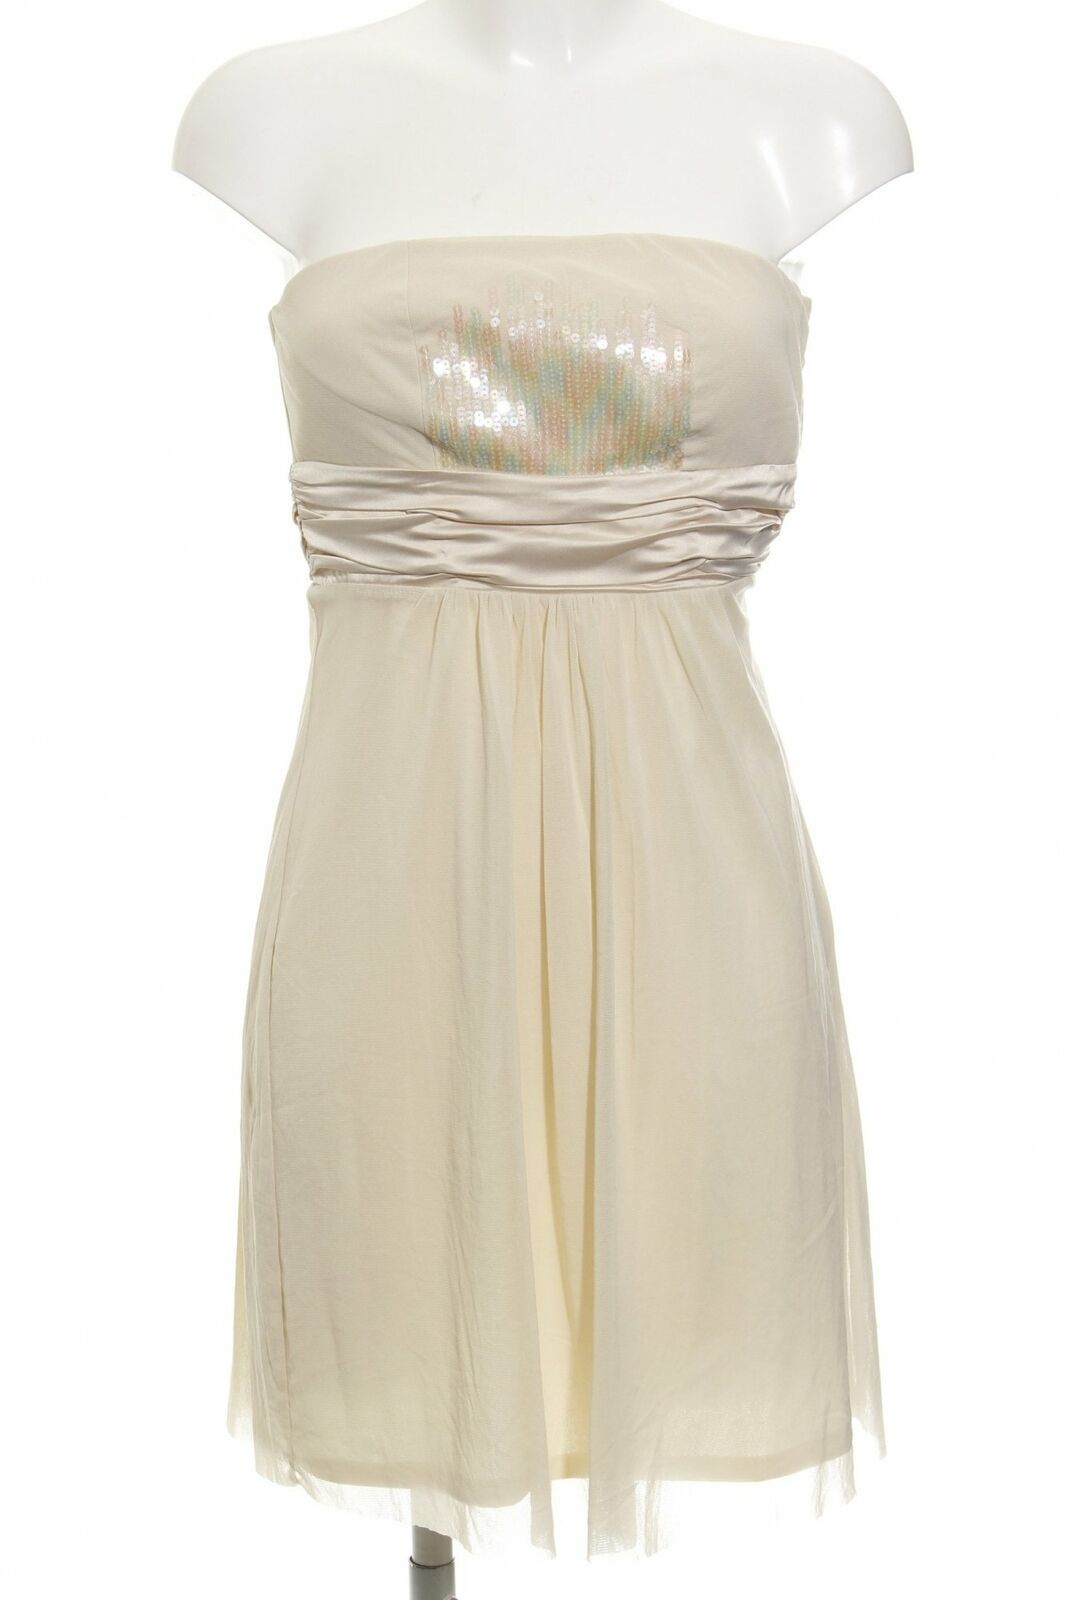 ESPRIT schulterfreies Kleid creme Elegant Damen Gr. DE 16 Dress